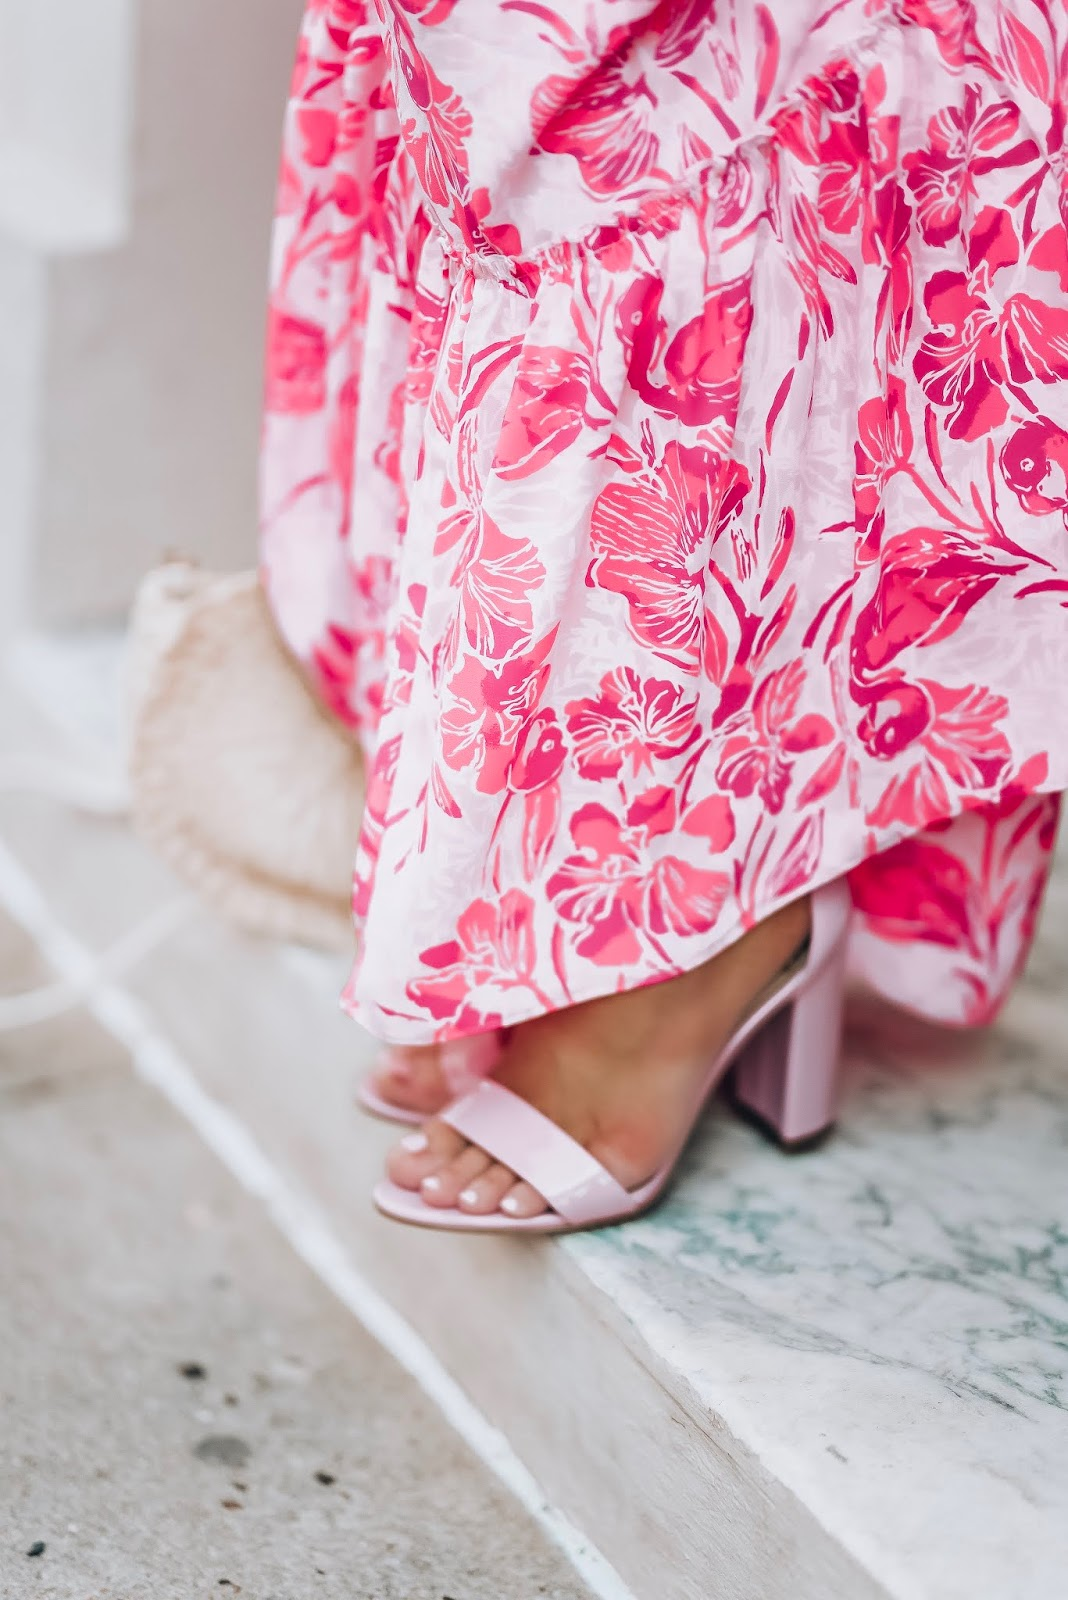 Lilly Pulitzer Melody Maxi Dress in Charleston, SC. - Something Delightful Blog